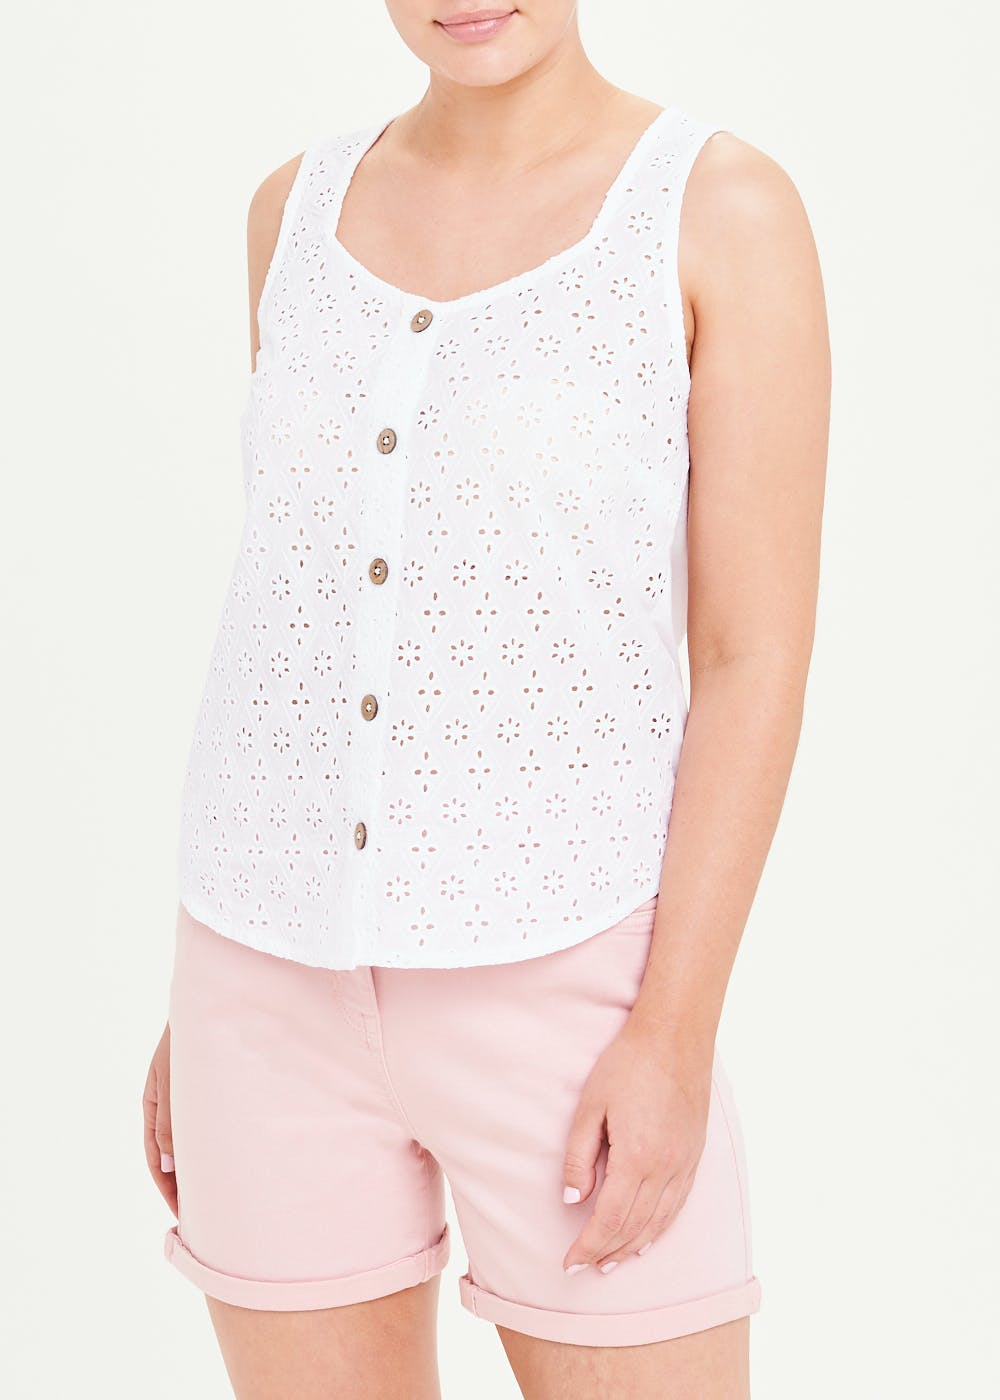 Broderie Button Front Vest Top – White